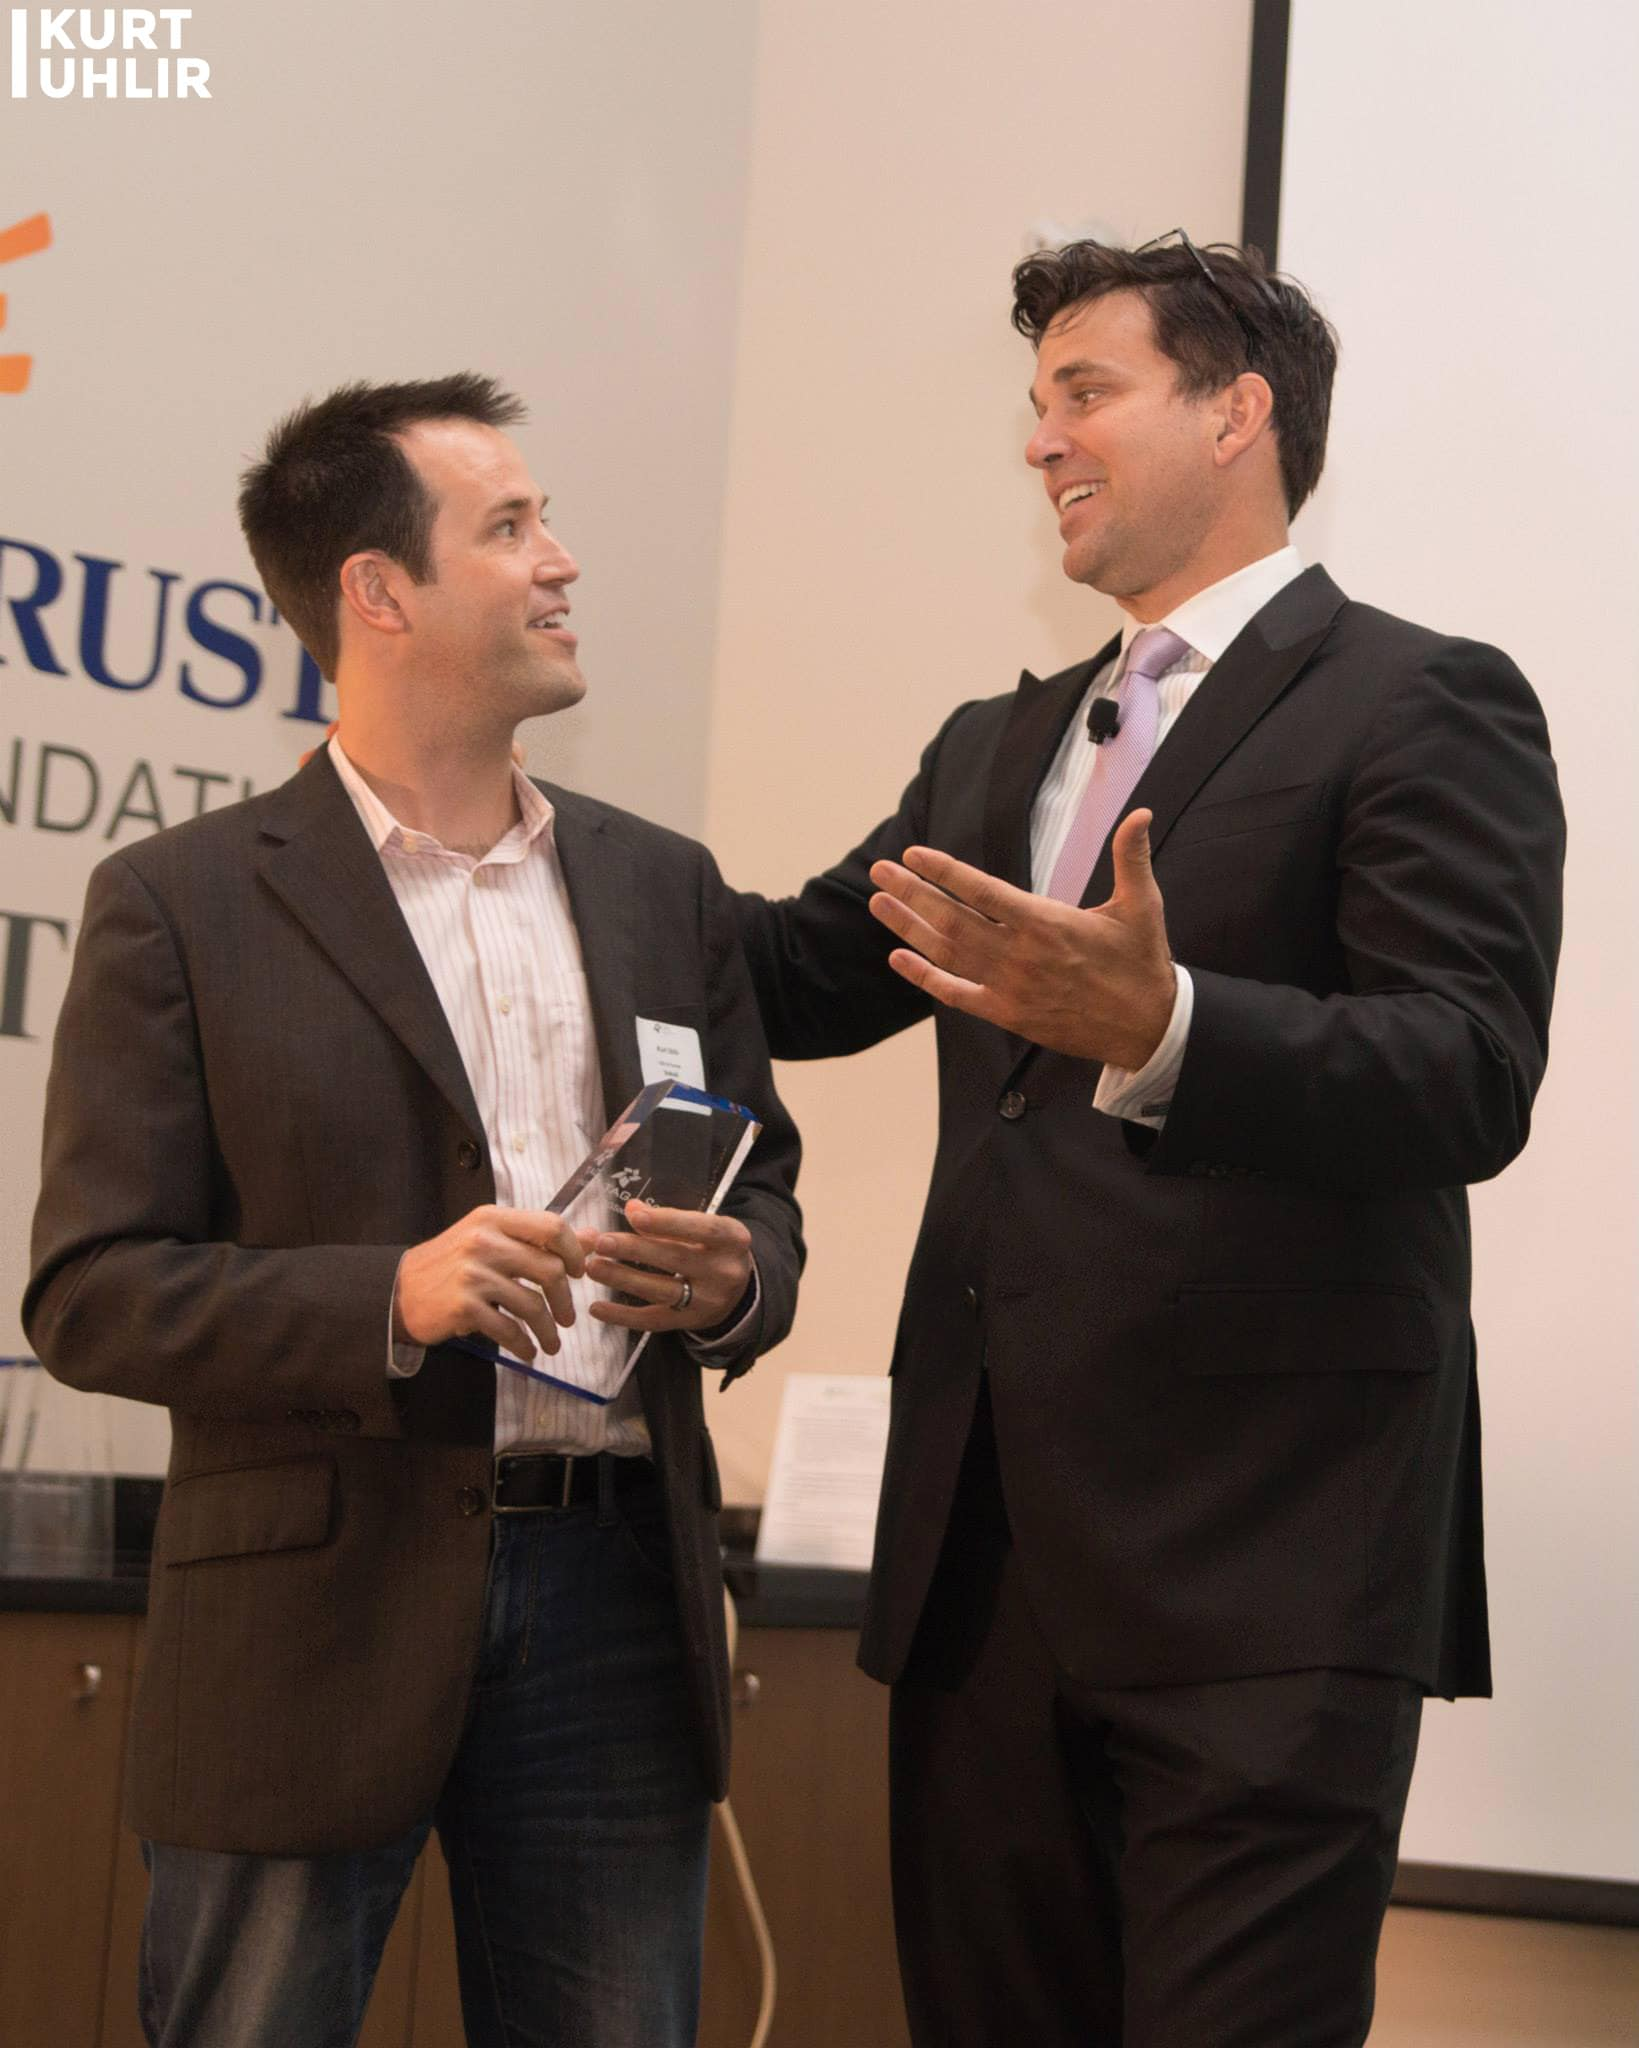 Kurt Uhlir with Conn Jackson. After accepting award for Sideqik leading the evolution of partnership marketing into influencer marketing. 2014 TAG Social Savvy Awards - Technology Association of Georgia